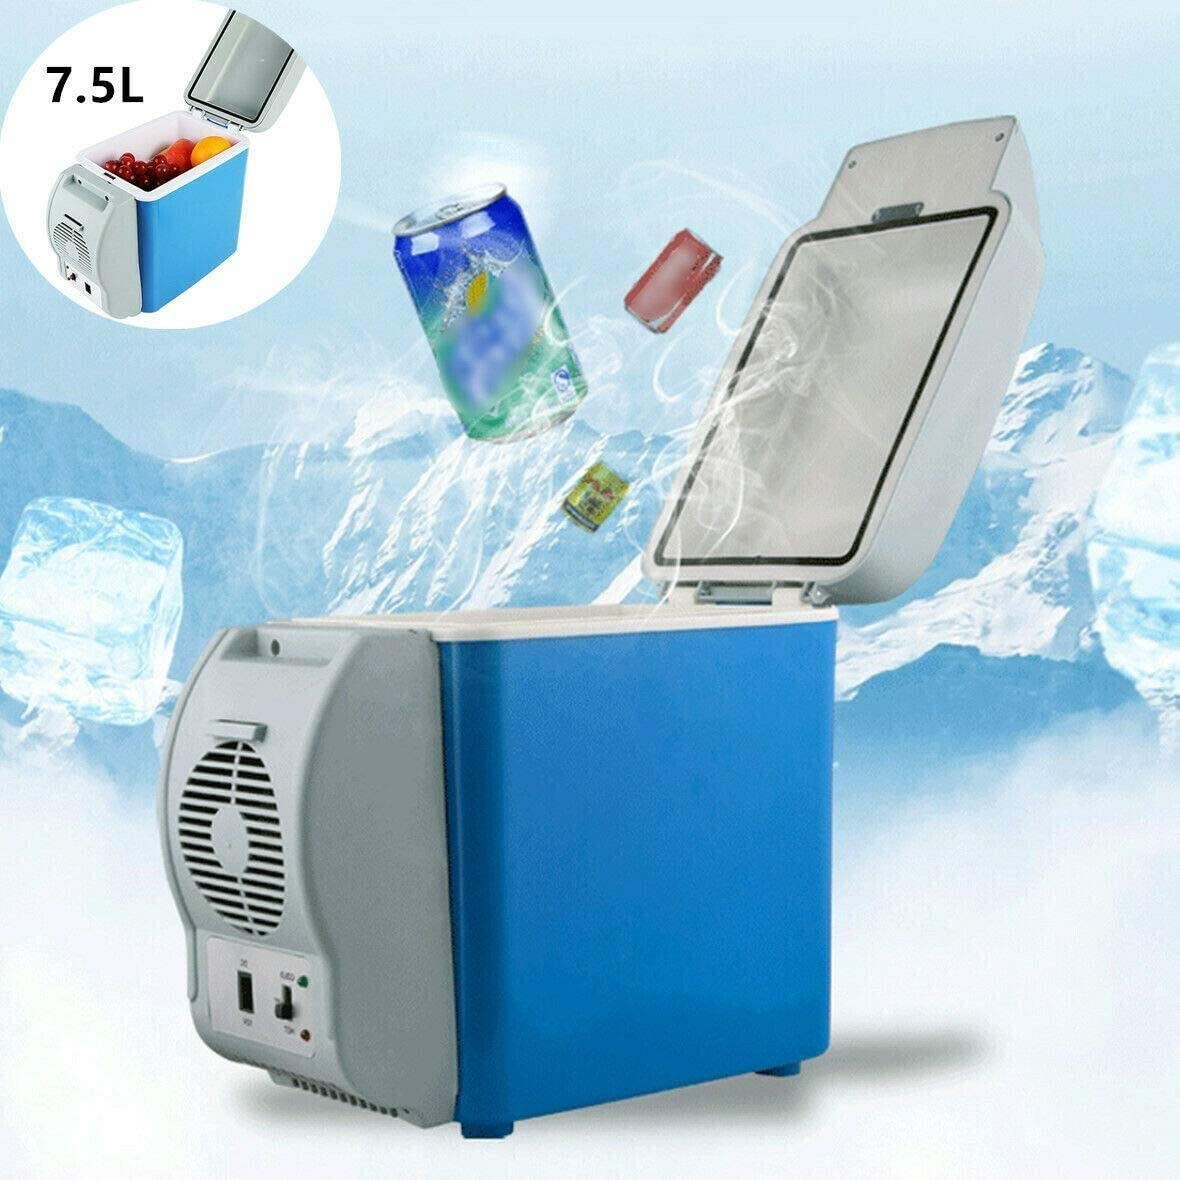 JIEJIEZ Car Refrigerator, Mini Portable Compact Cooling and Heating Freezer Heat Sink Suitable for Homes, Offices, Cars, Dormitories Or Boats - Compact